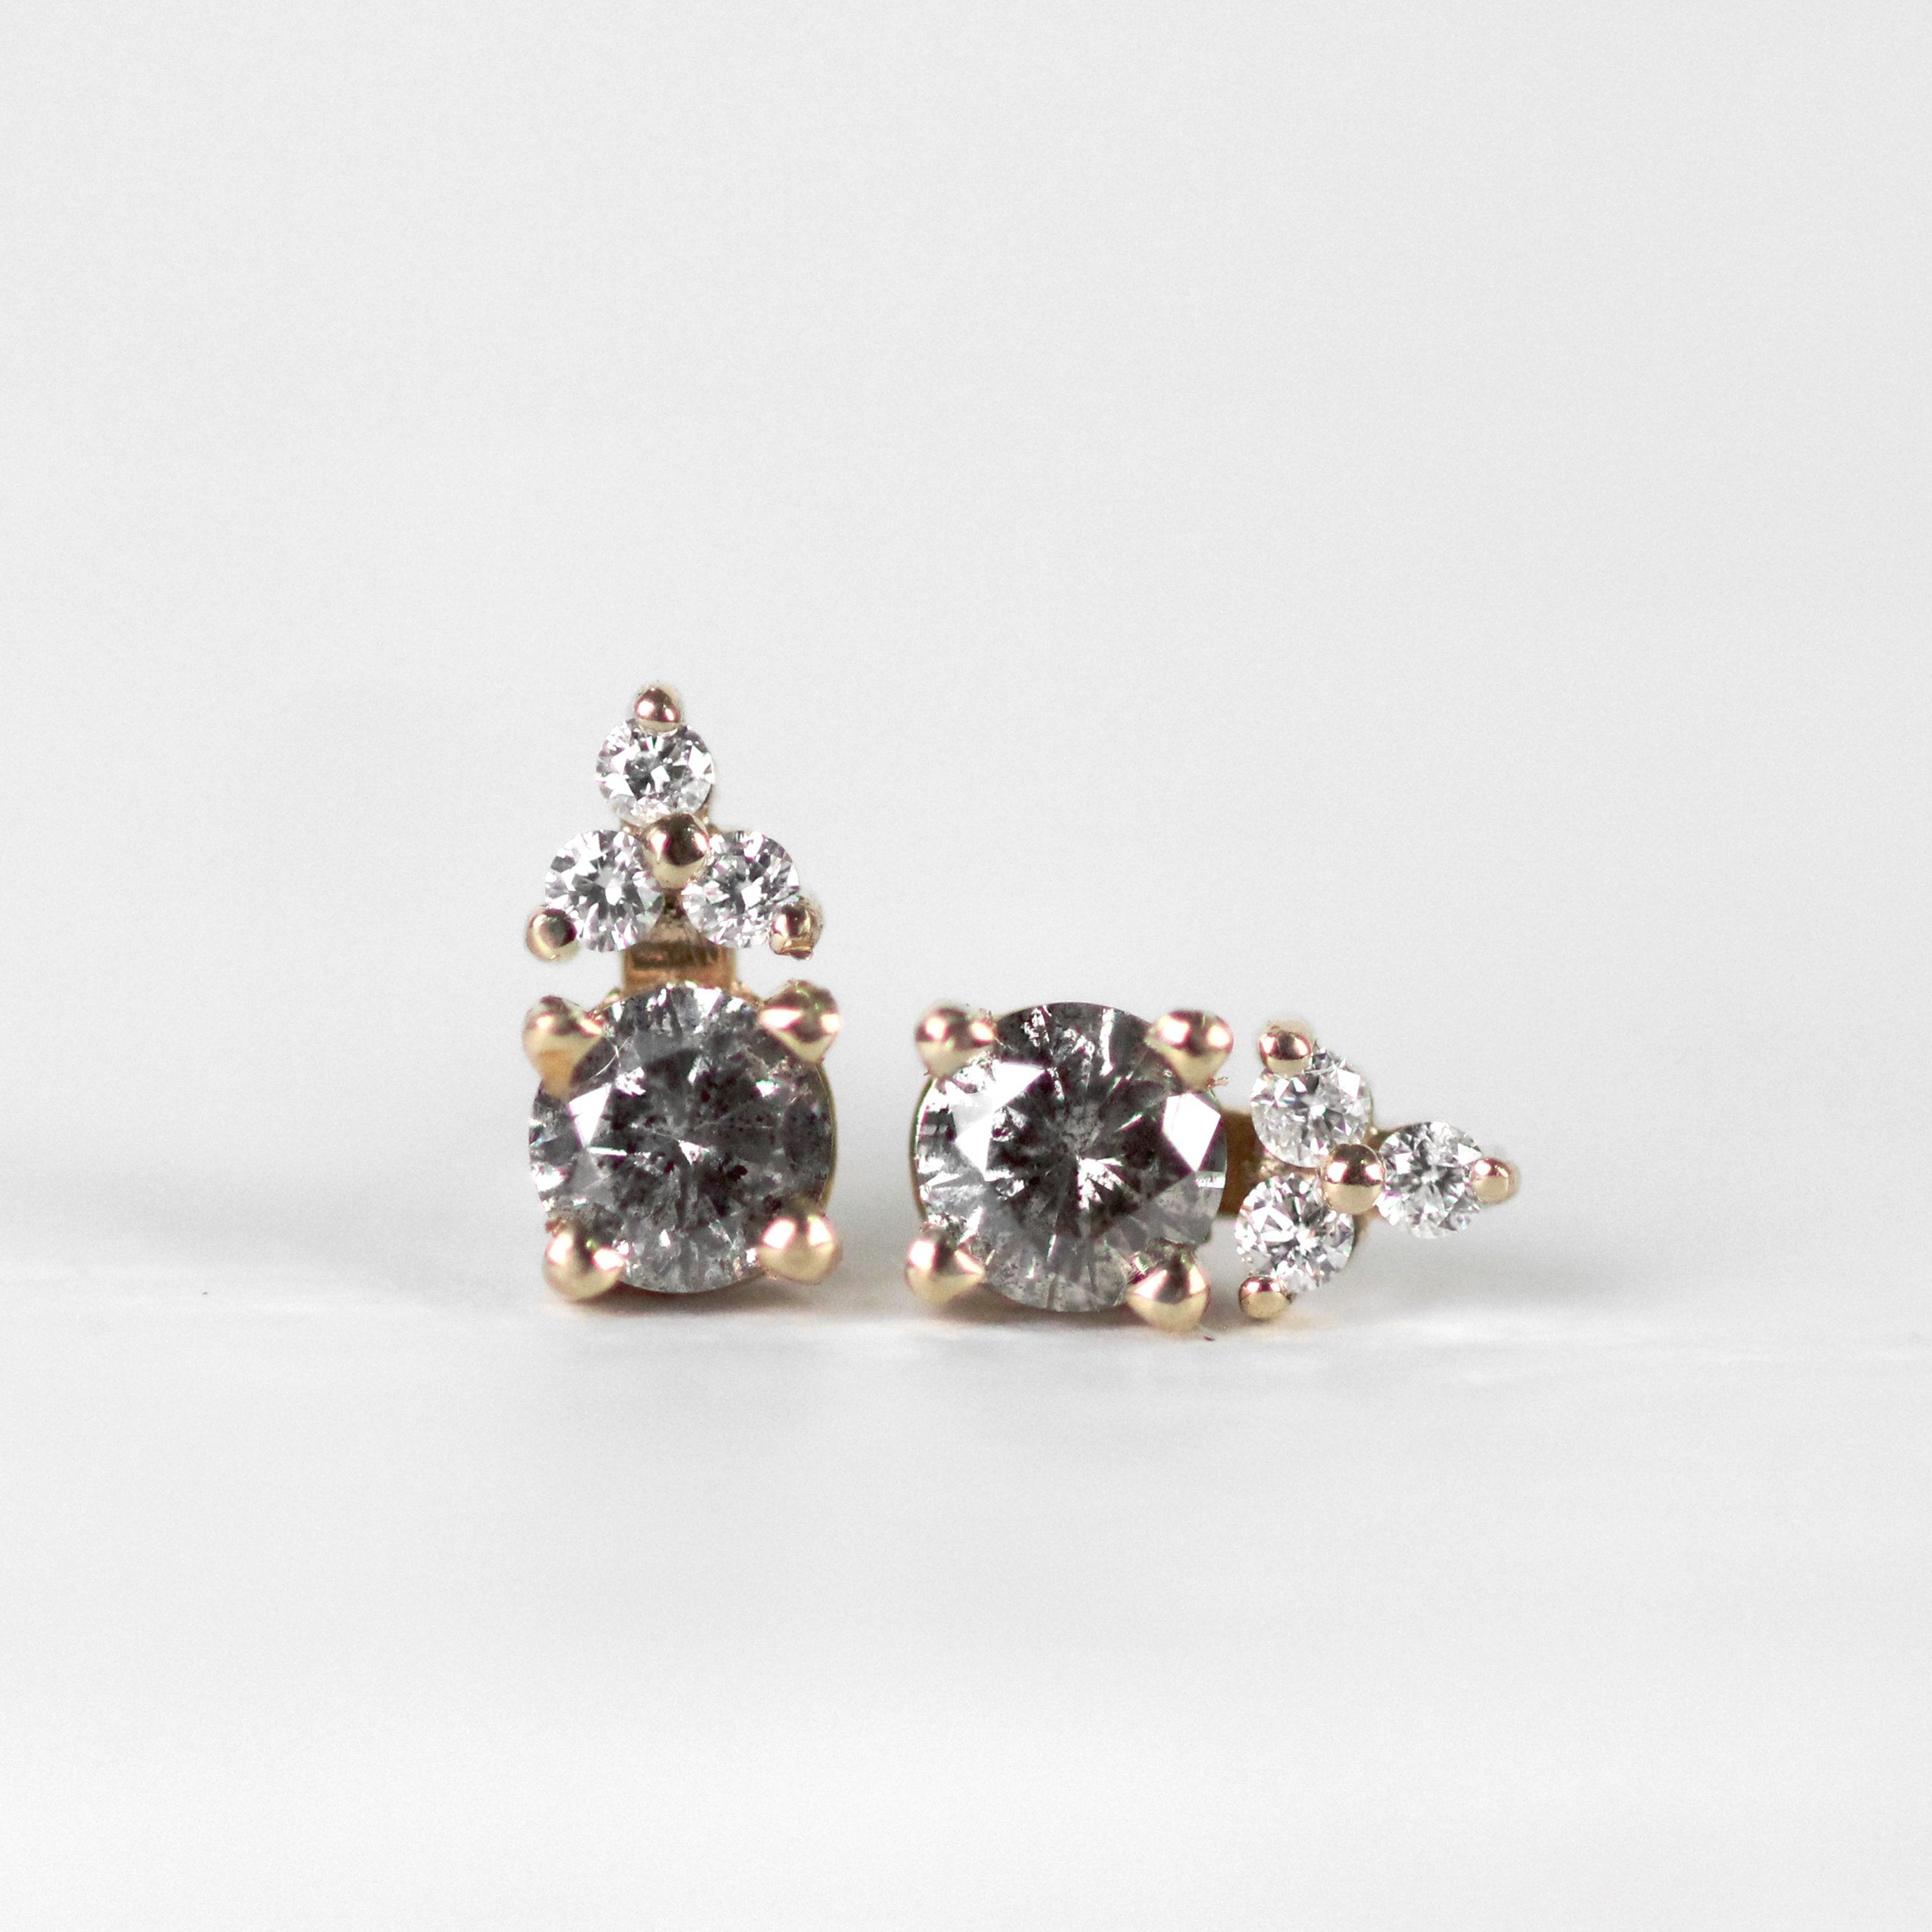 Gray Diamond Earring Studs in Gold - Celestial and Trio of 1.3mm Diamond Accent - One of a kind, ready to ship